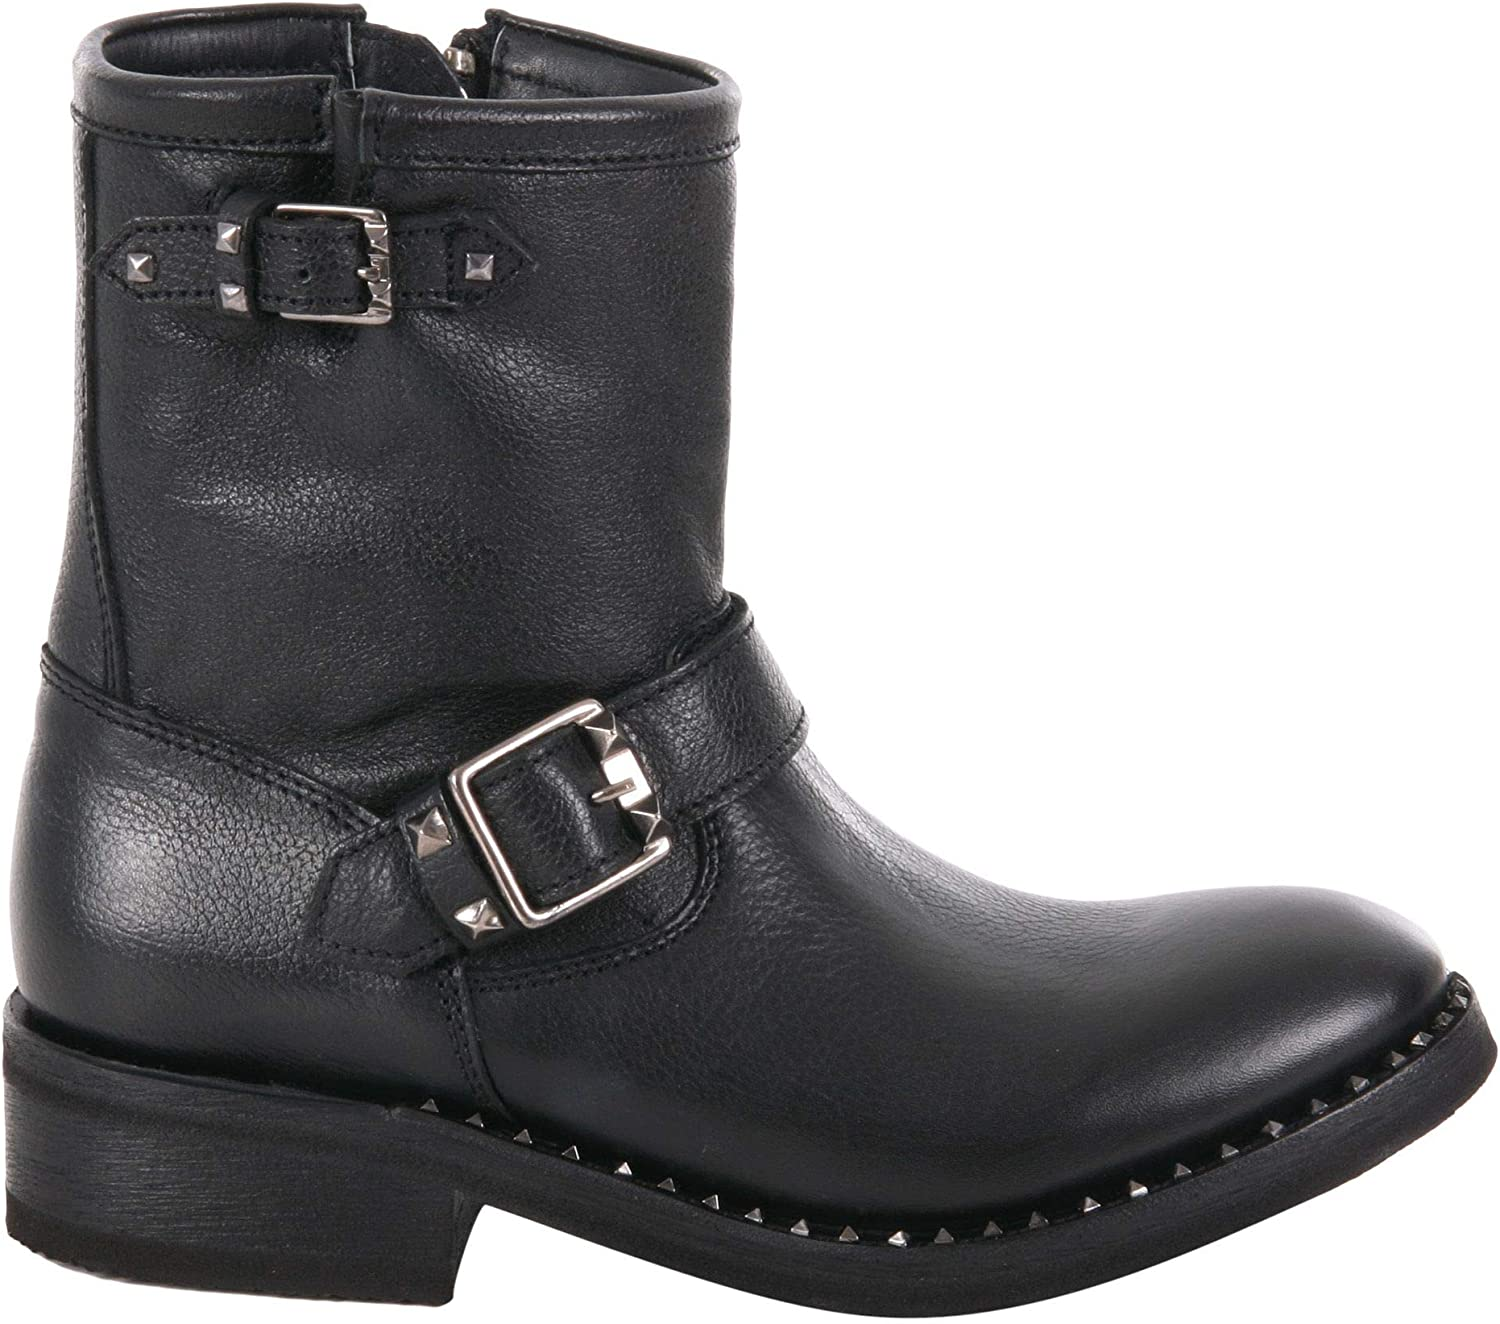 Ash Women's SOHO002 Black Leather Ankle Boots